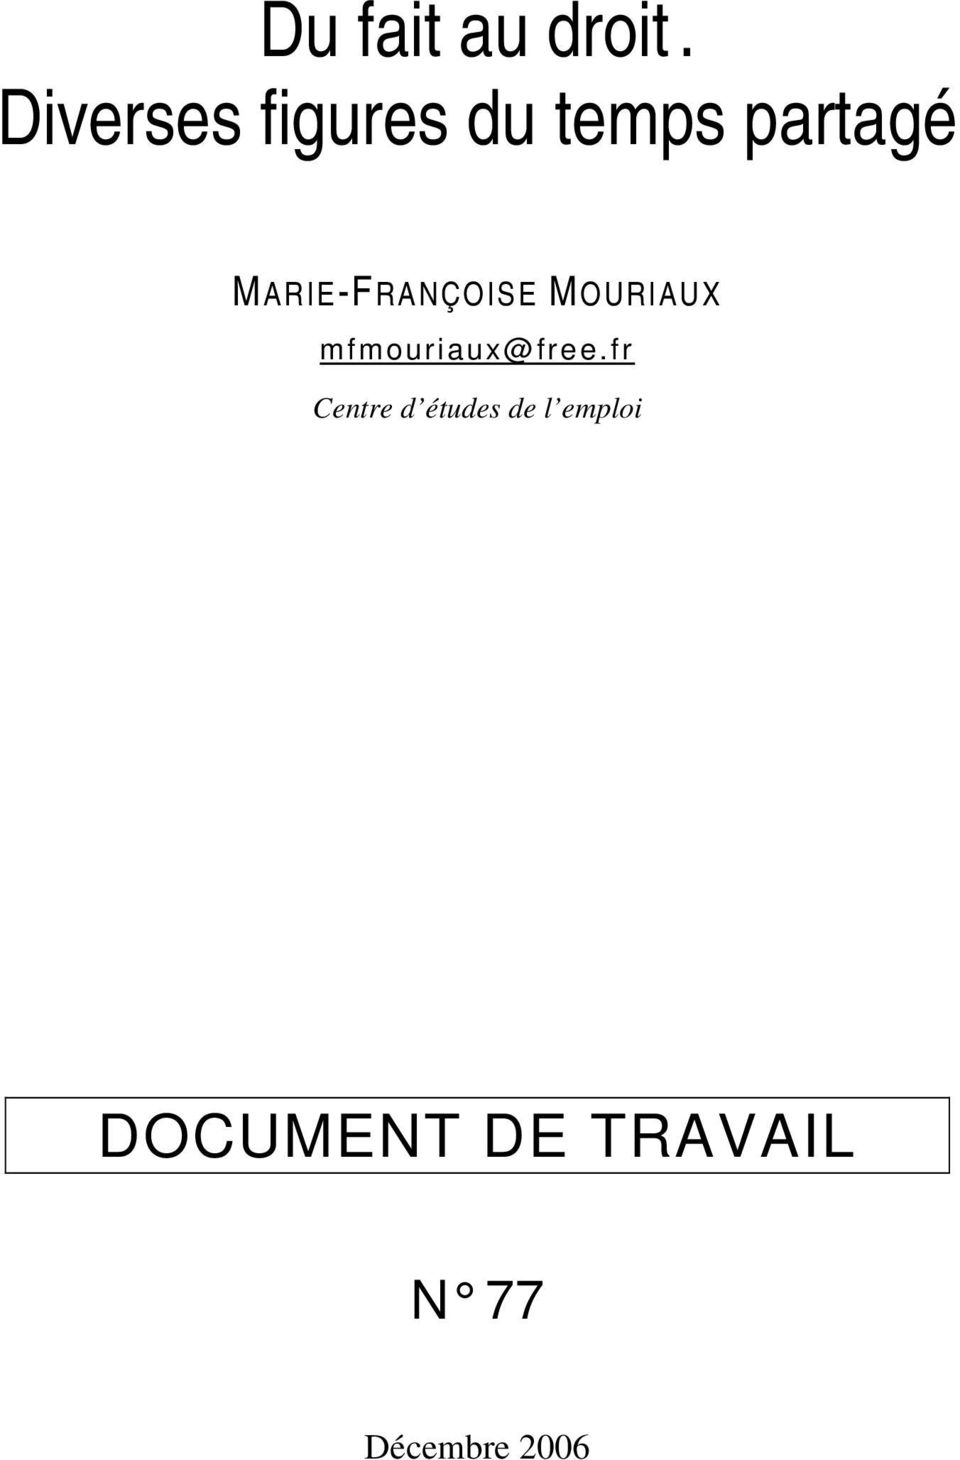 MARIE-FRANÇOISE MOURIAUX mfmouriaux@free.